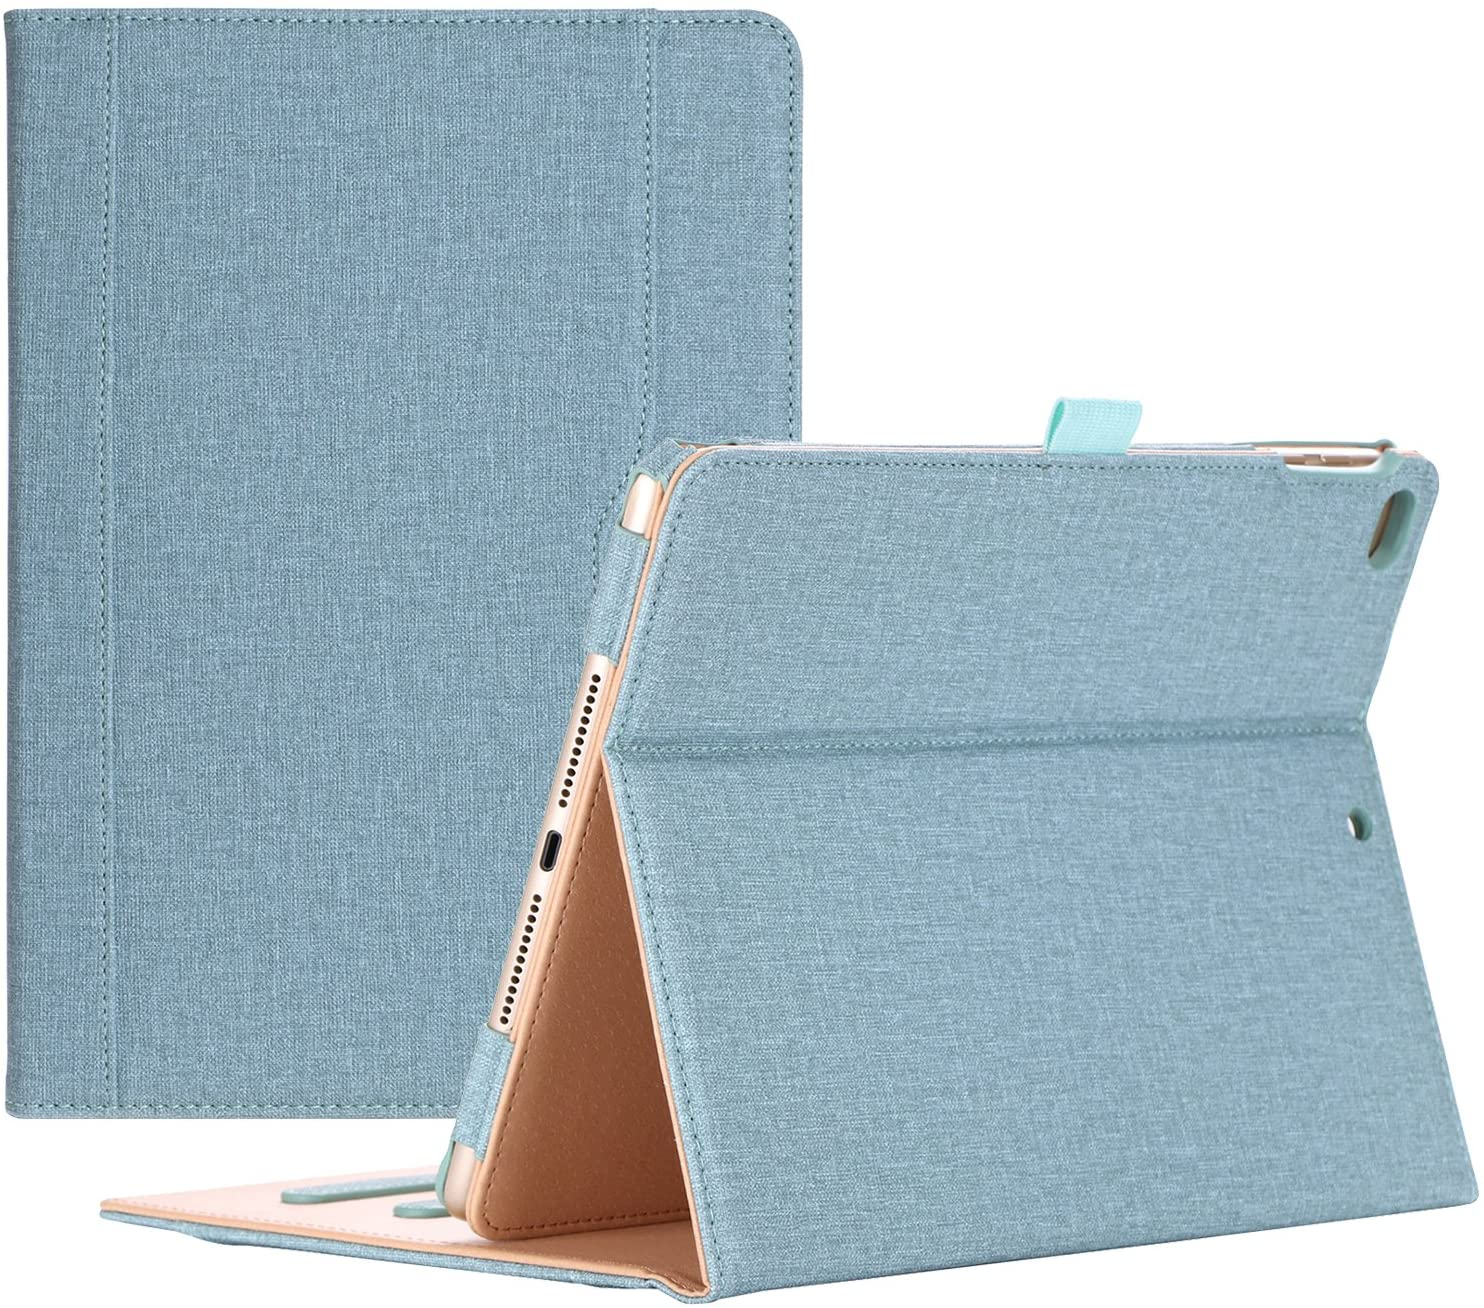 ProCase iPad 9.7 Case 2018/2017 iPad Case - Stand Folio Cover Case for Apple iPad 9.7 inch, Also Fit iPad Air 2 / iPad Air -Teal